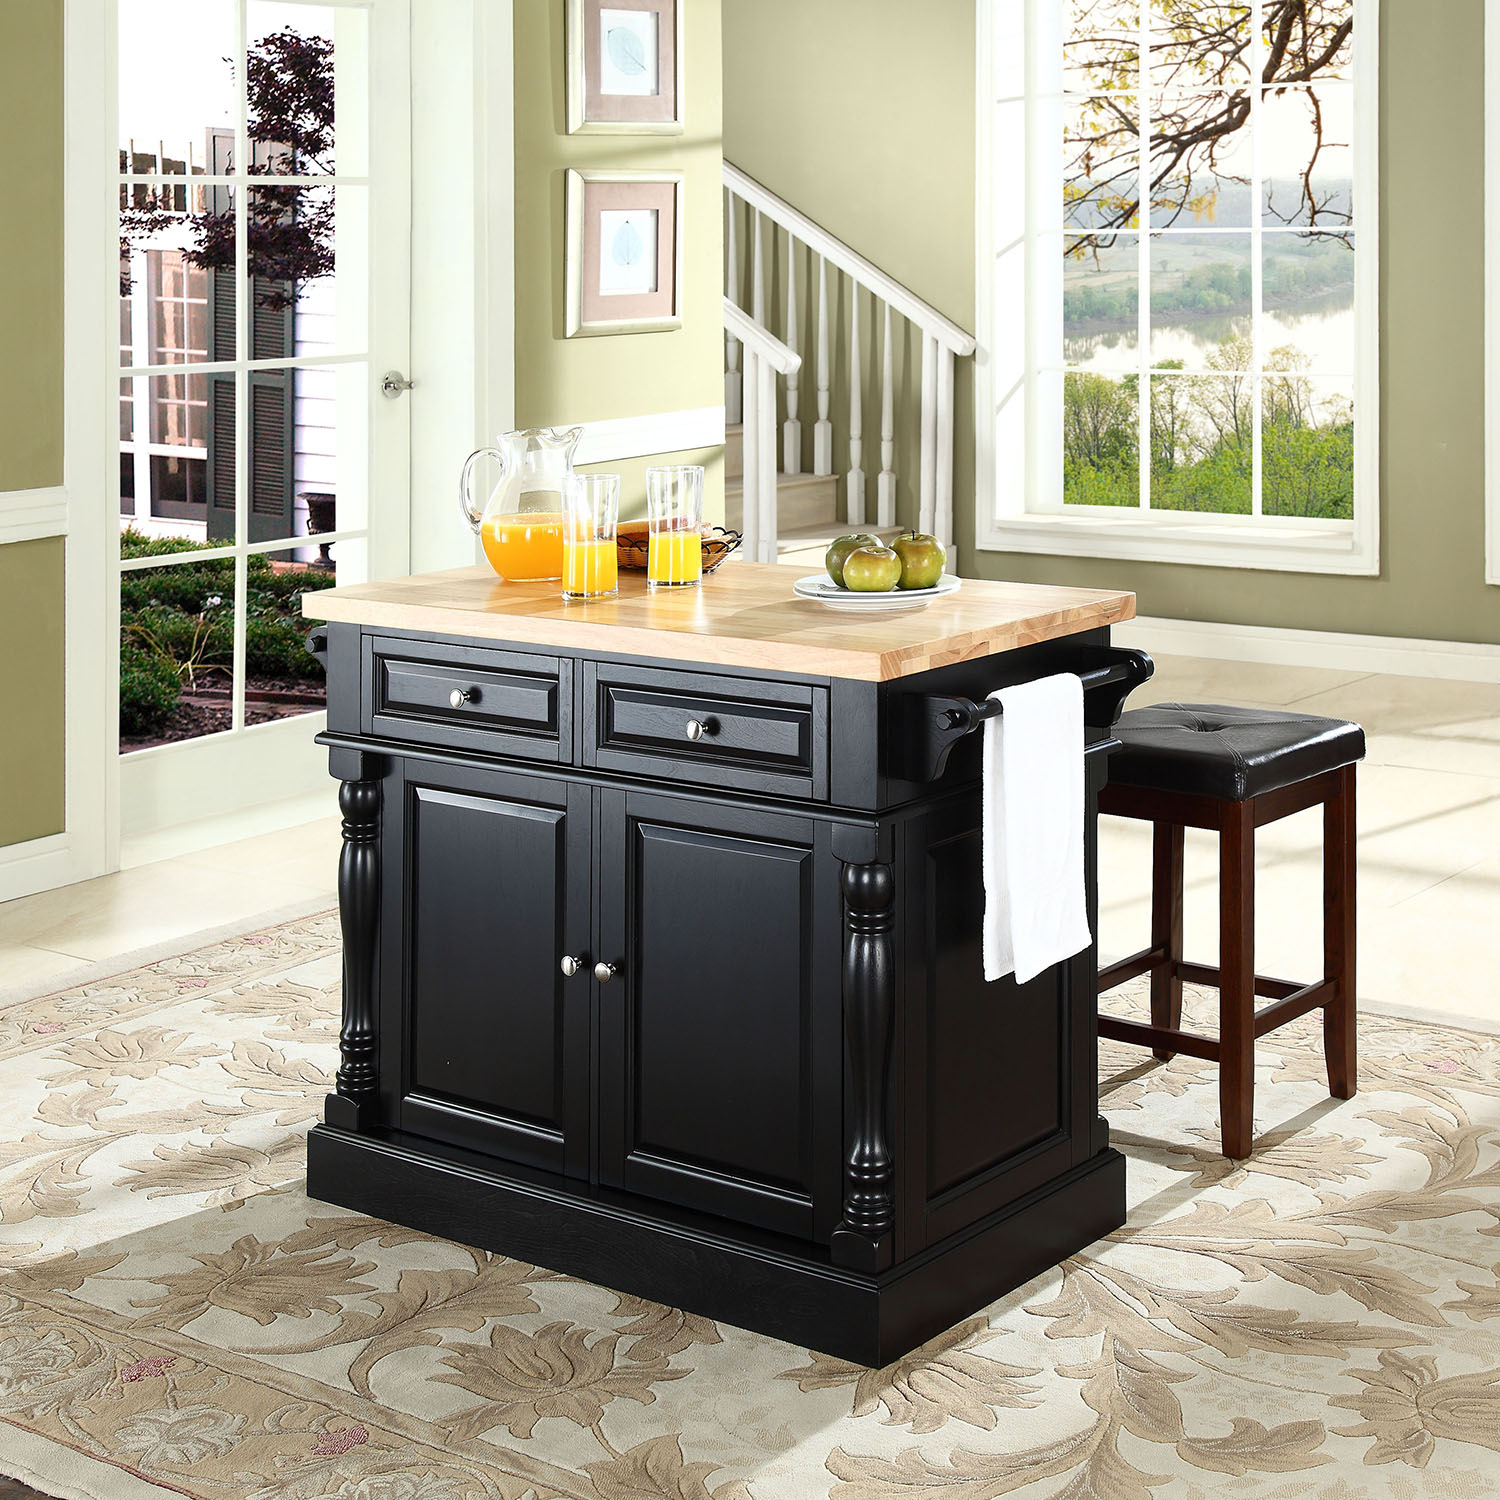 kitchen island with seats butcher block top kitchen island with square seat stools 5223